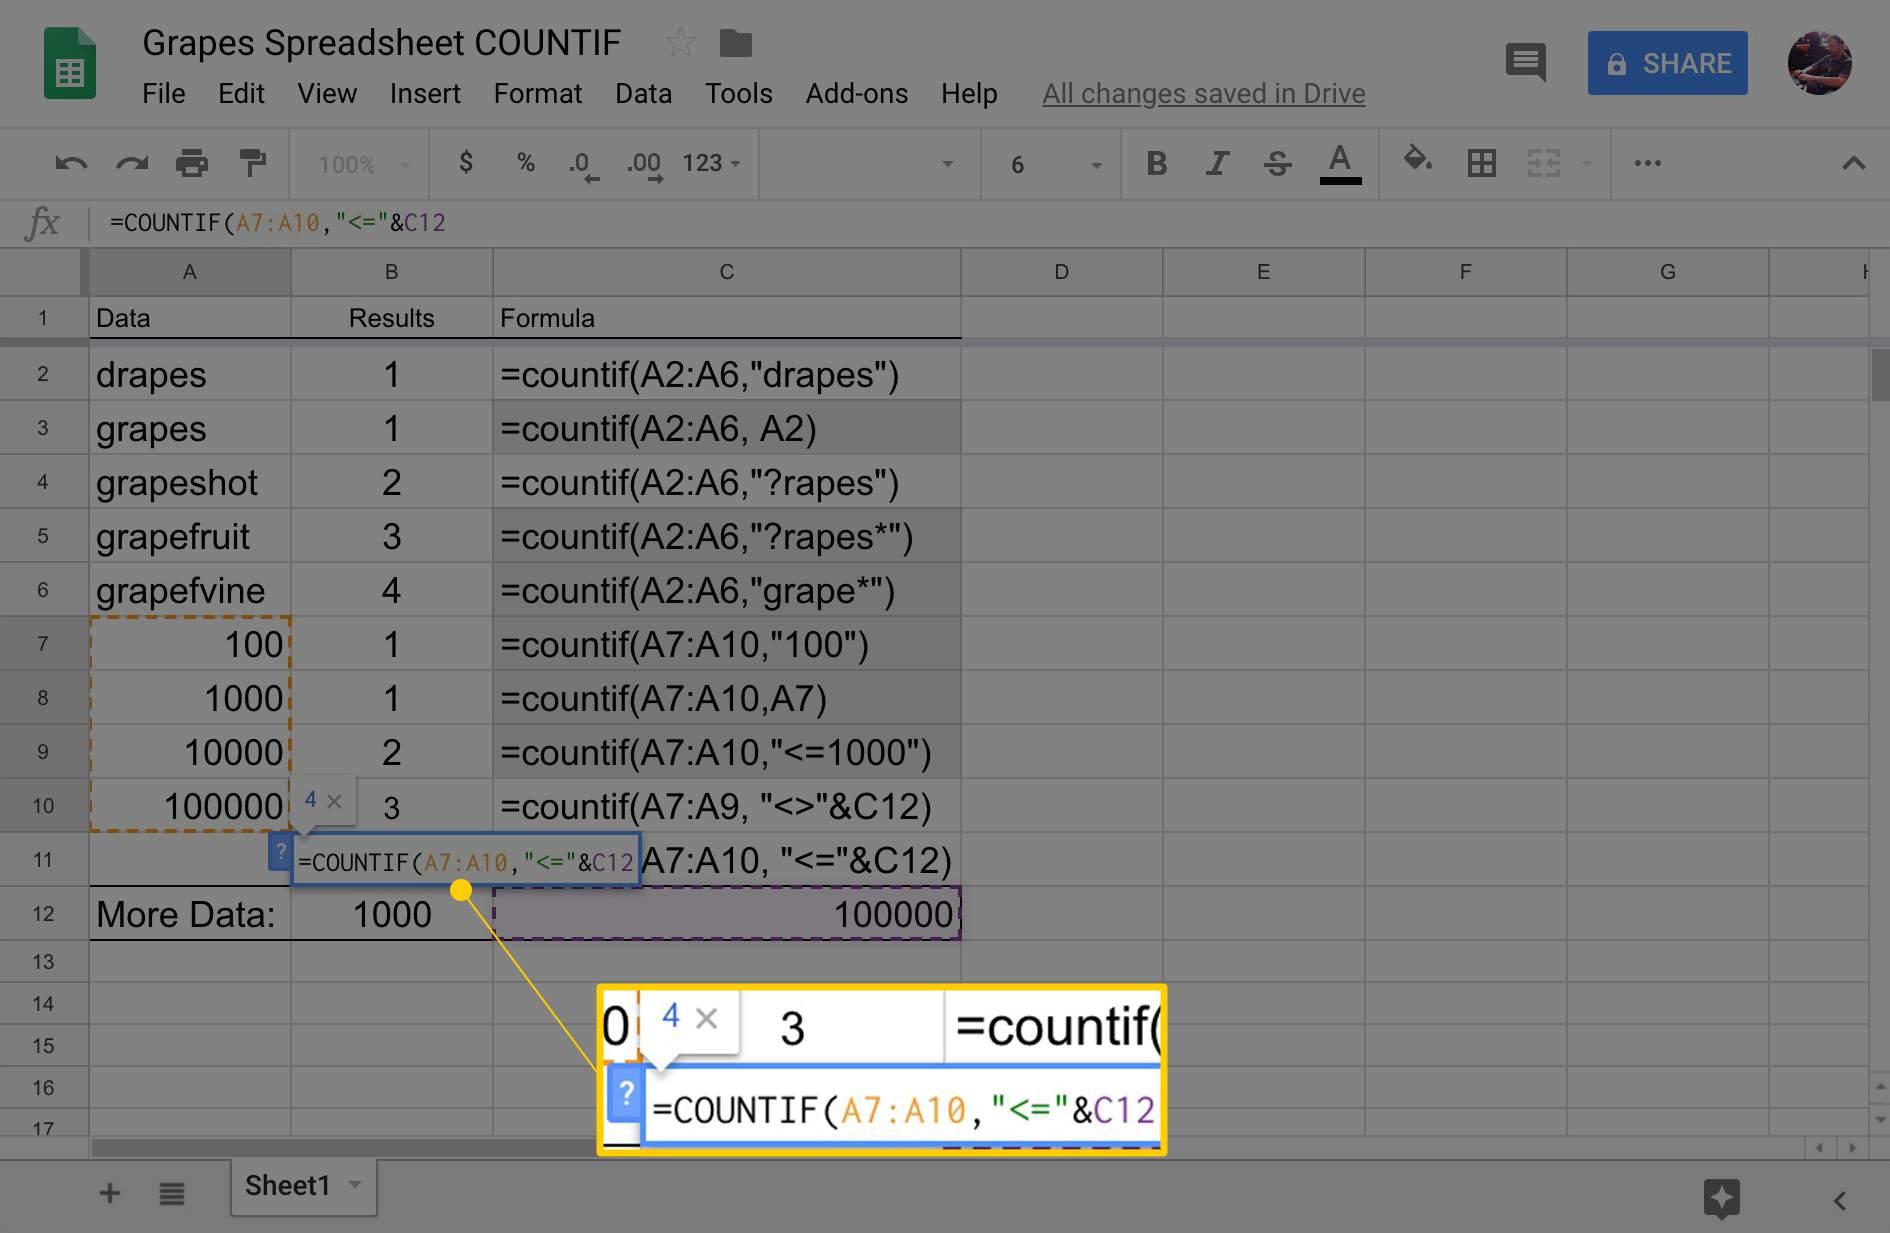 Cell B11 highlighted in Google sheet, showing =COUNTIF(A7:A10,